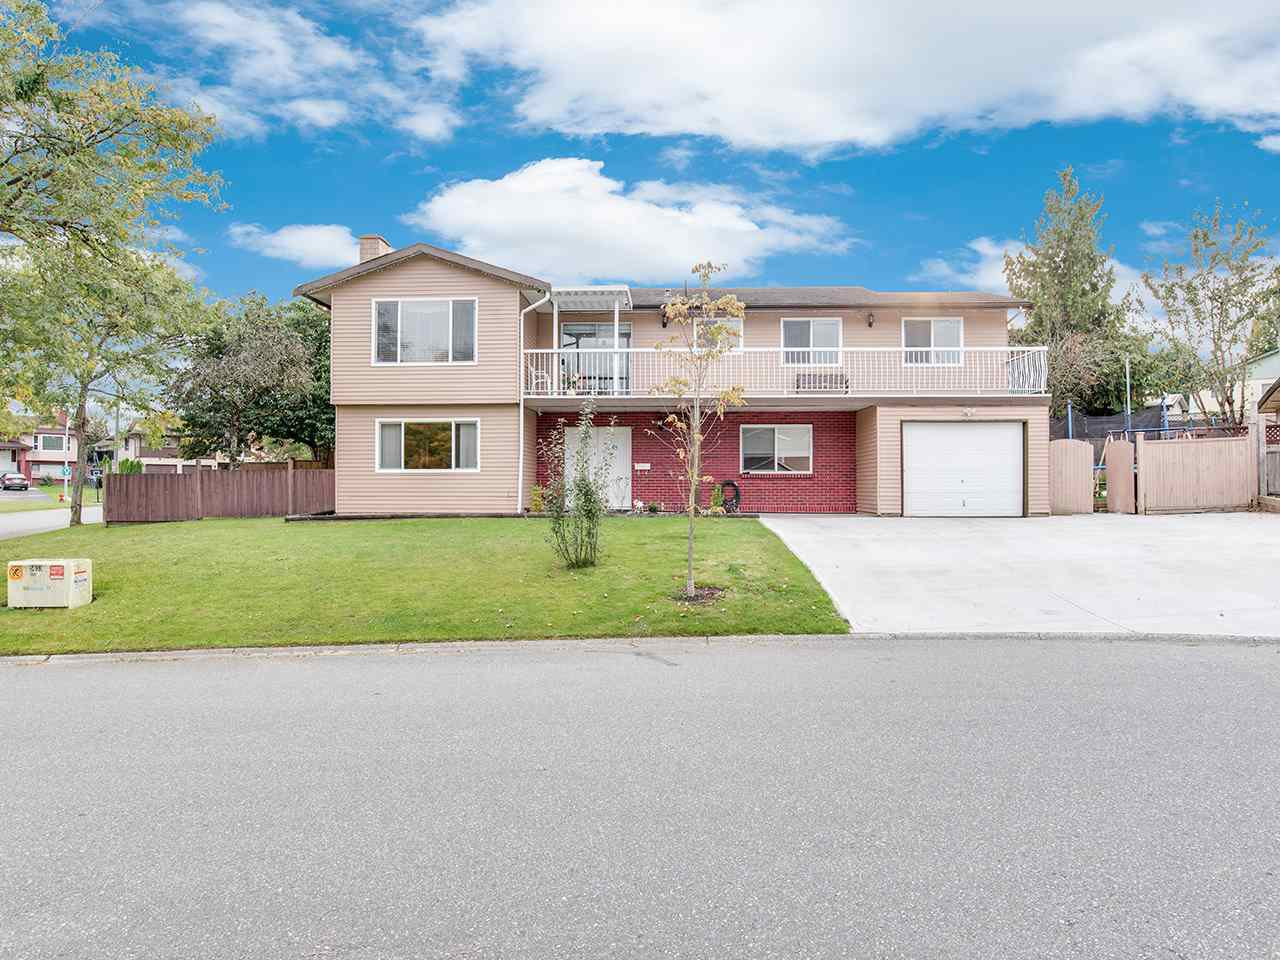 """Main Photo: 14199 72A Avenue in Surrey: East Newton House for sale in """"EAST NEWTON"""" : MLS®# R2504461"""